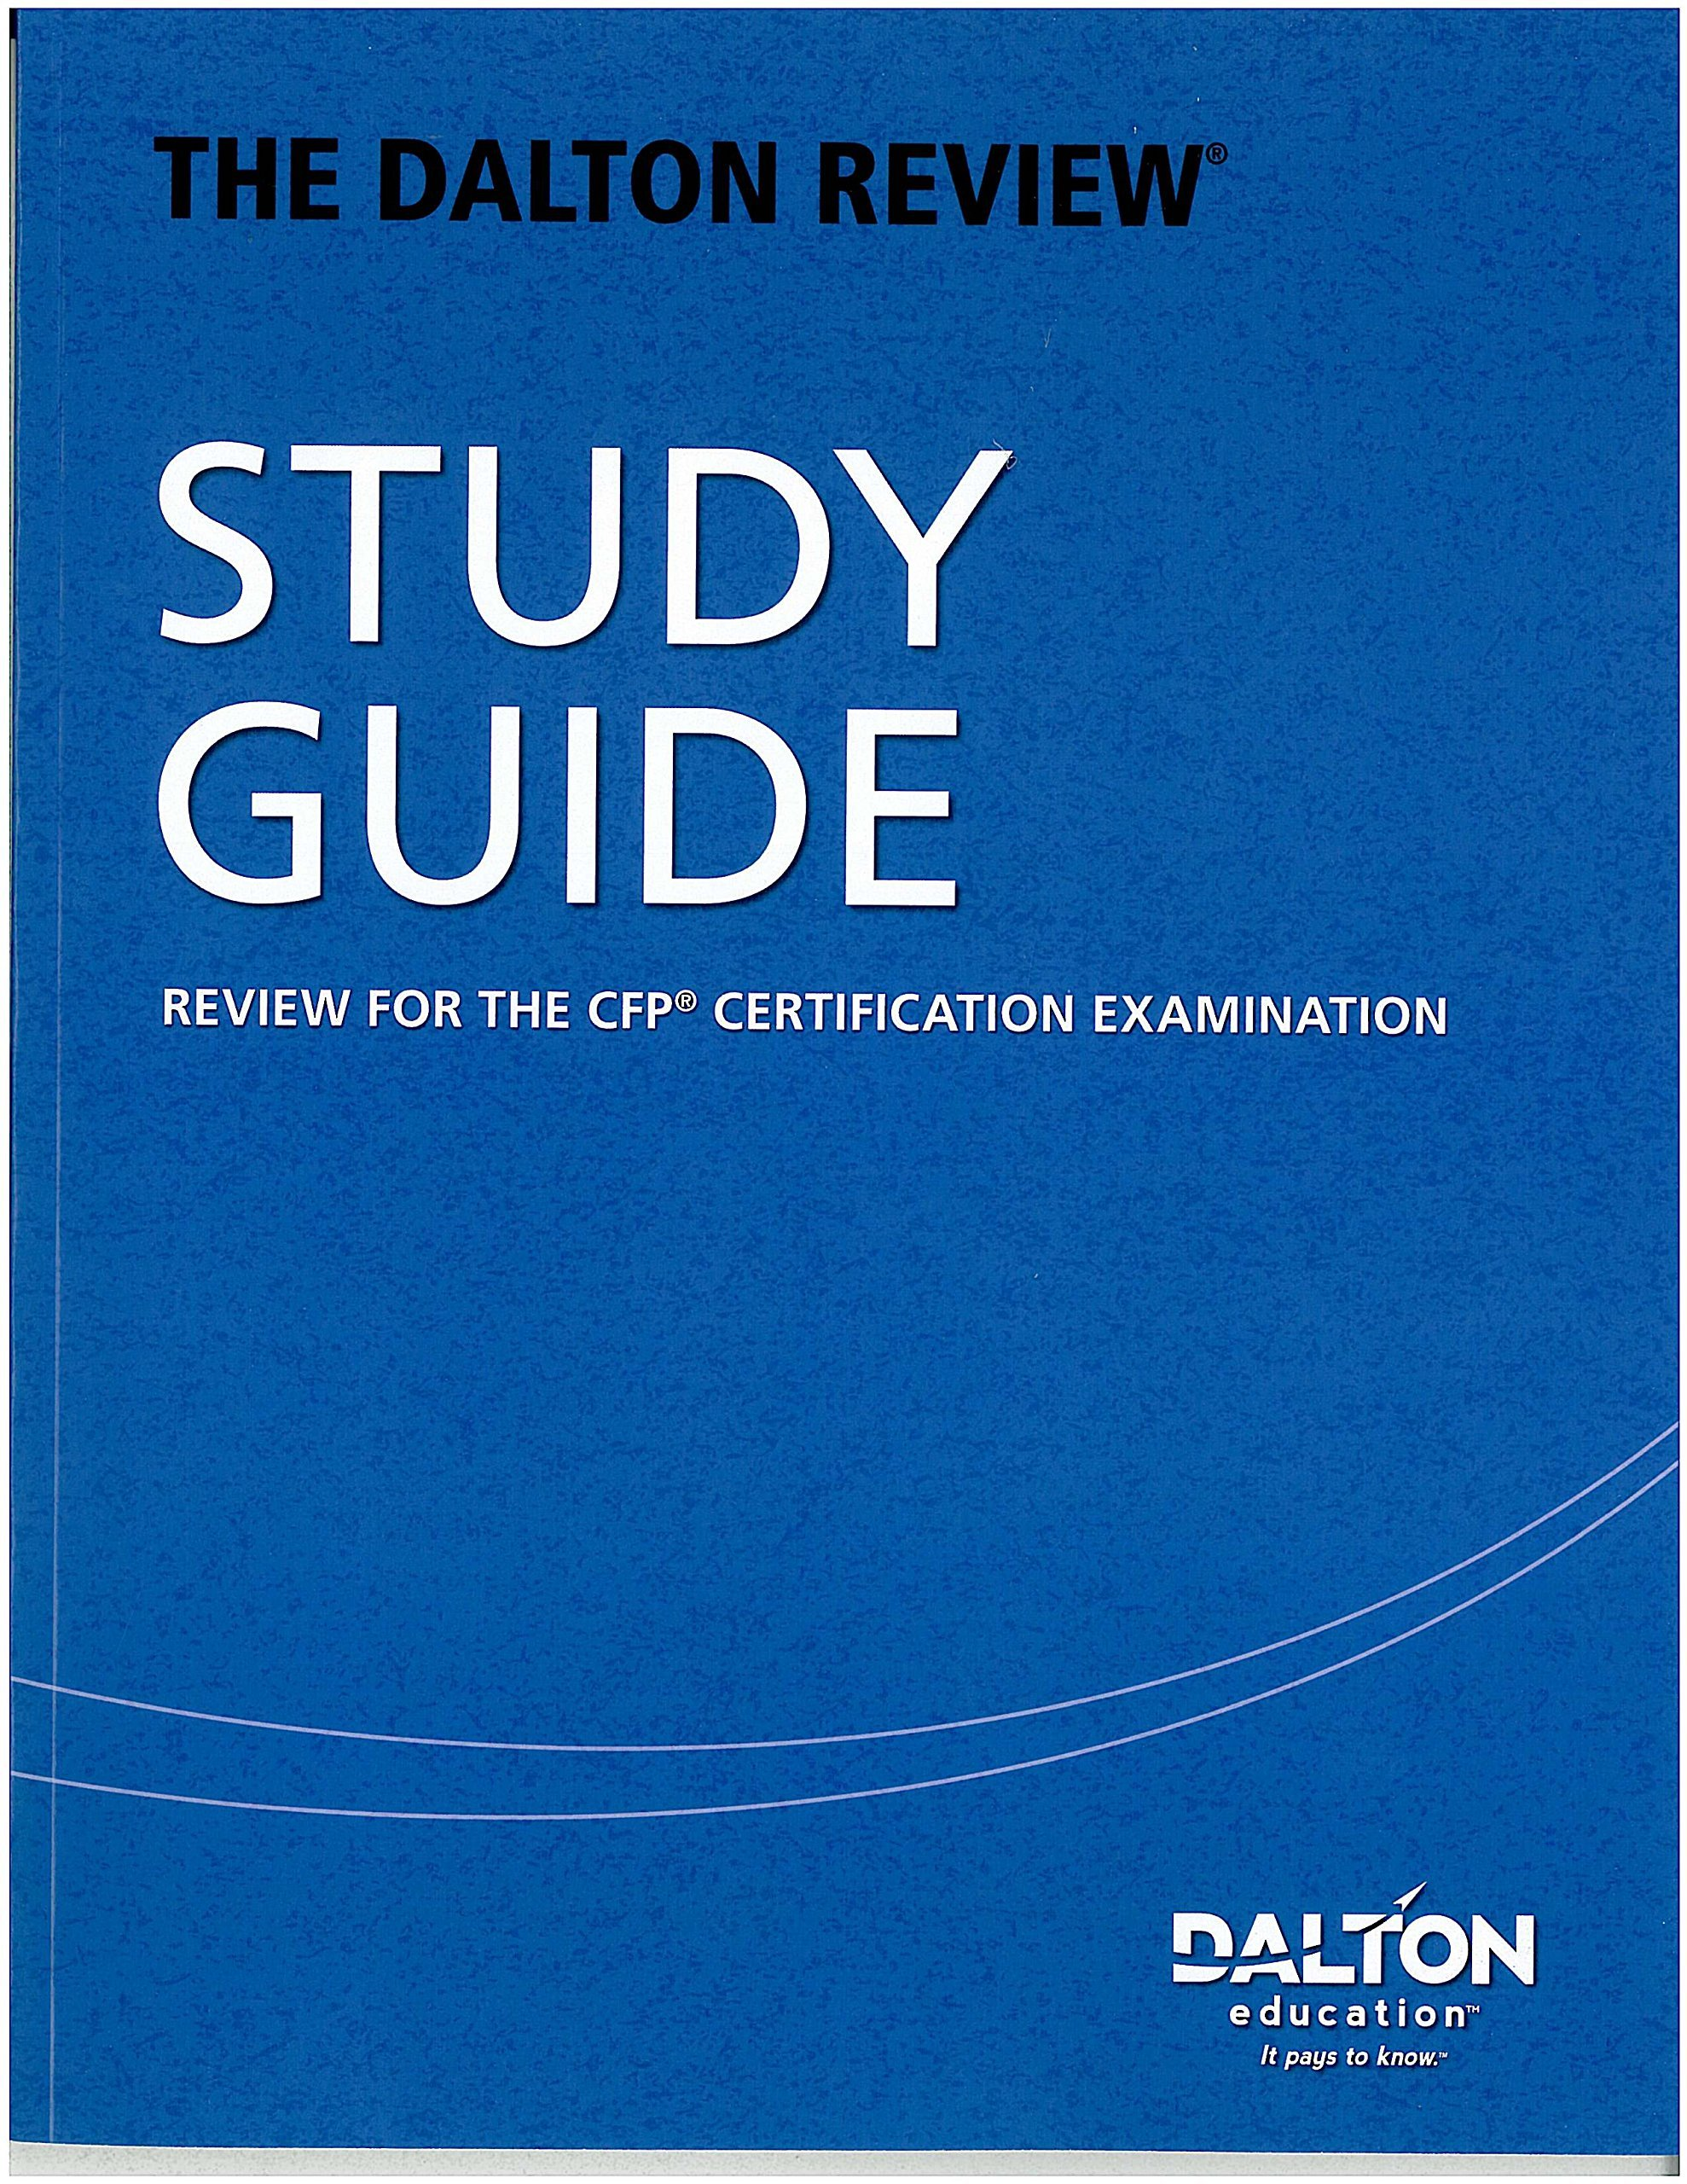 The Dalton Review Study Guide Review For The Cfp Certification